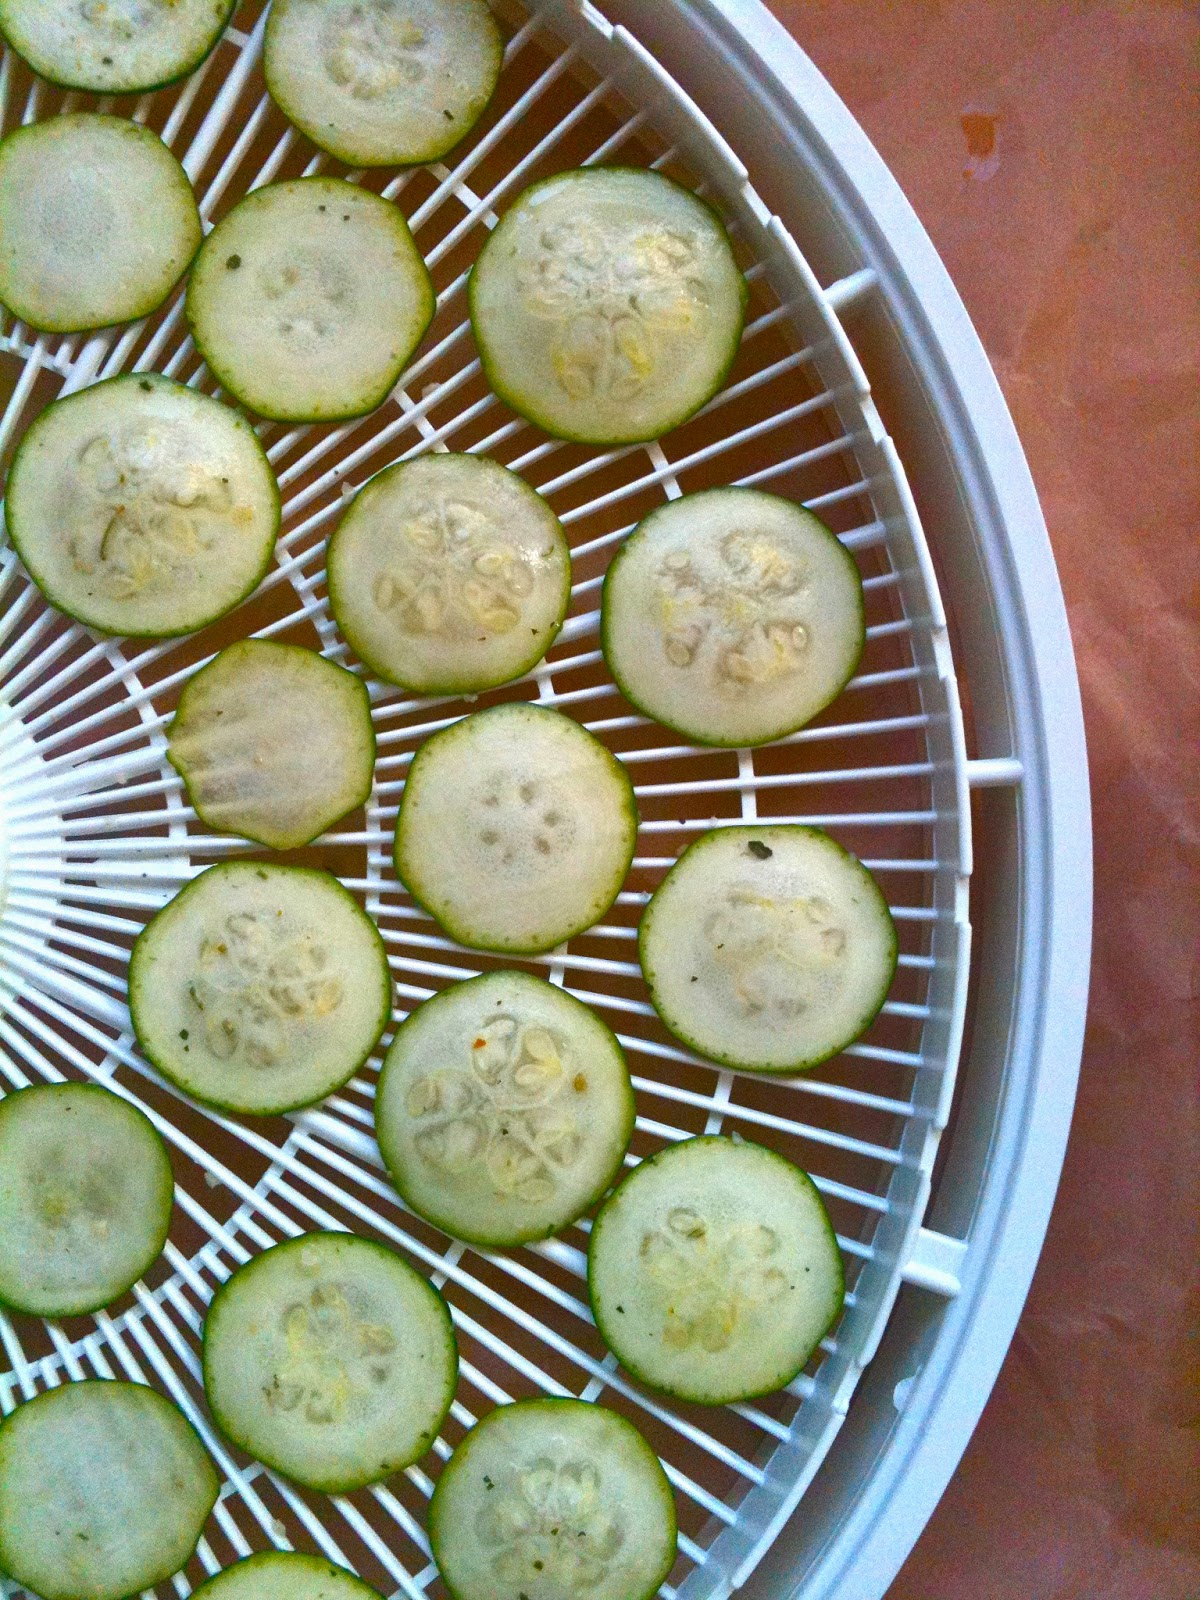 Passionately raw how to dehydrate food without a dehydrator dehydrating forumfinder Images